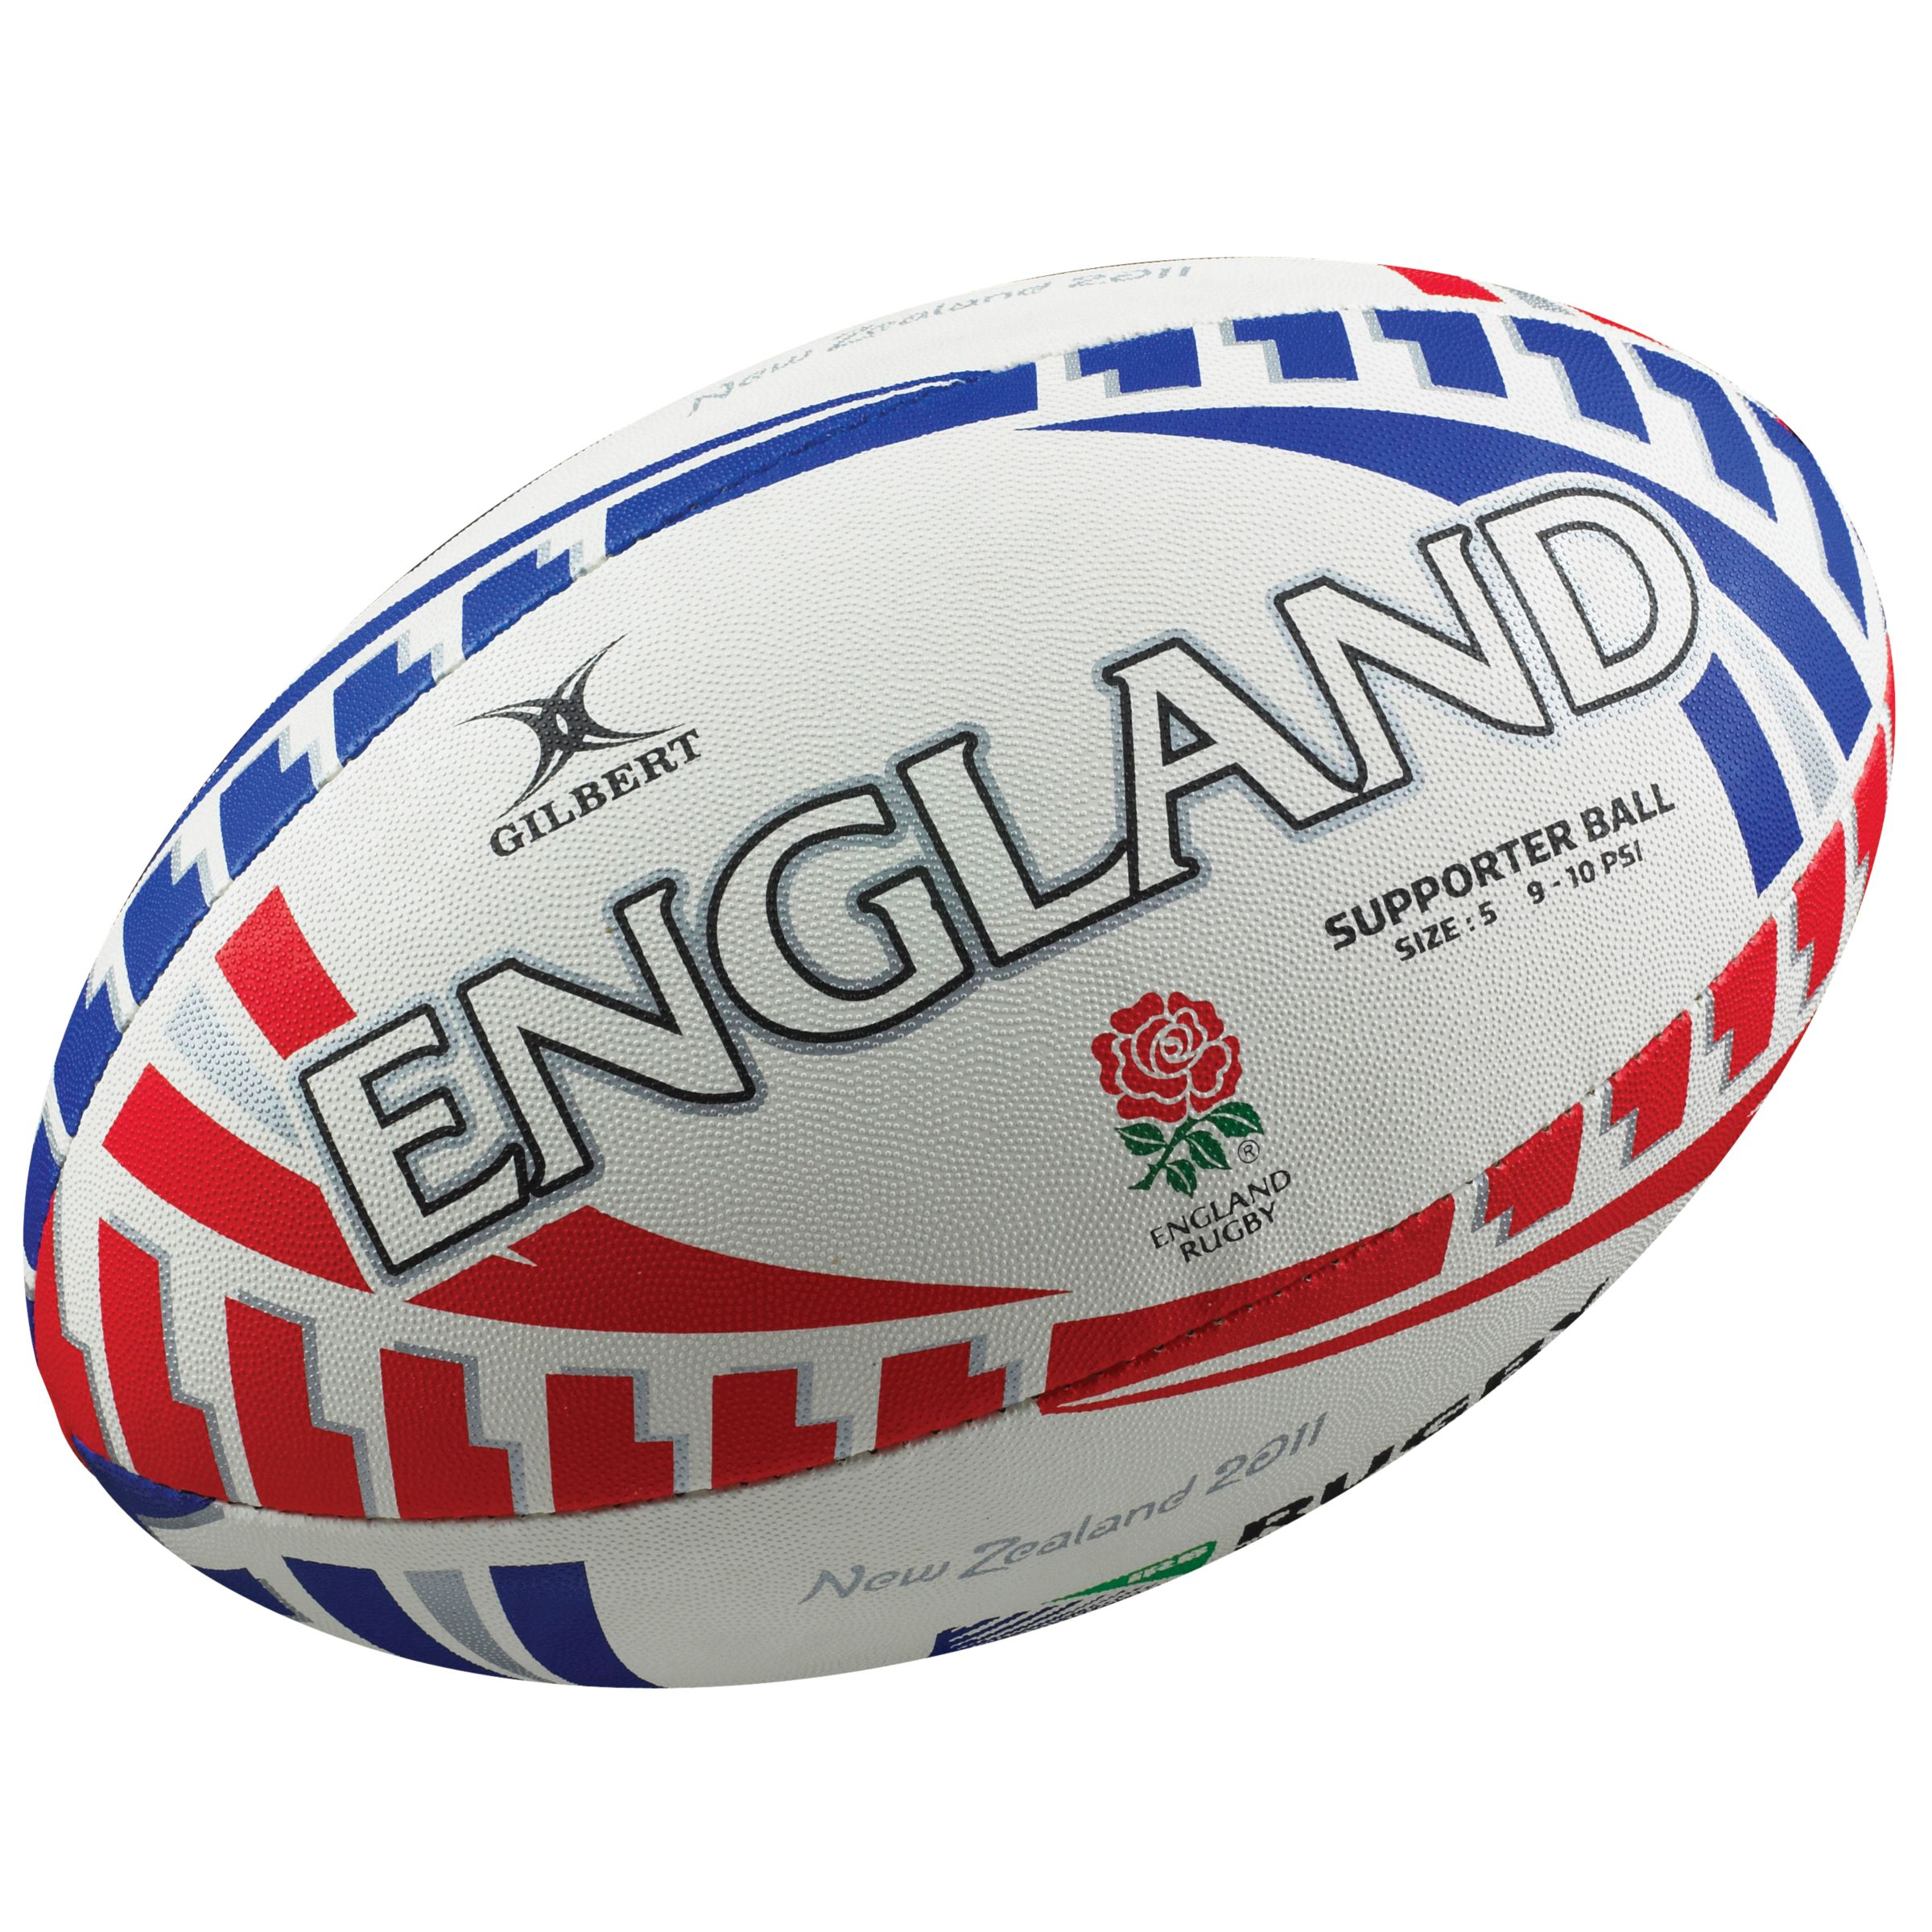 Gilbert Rugby World Cup England Supporters Ball, Size 5